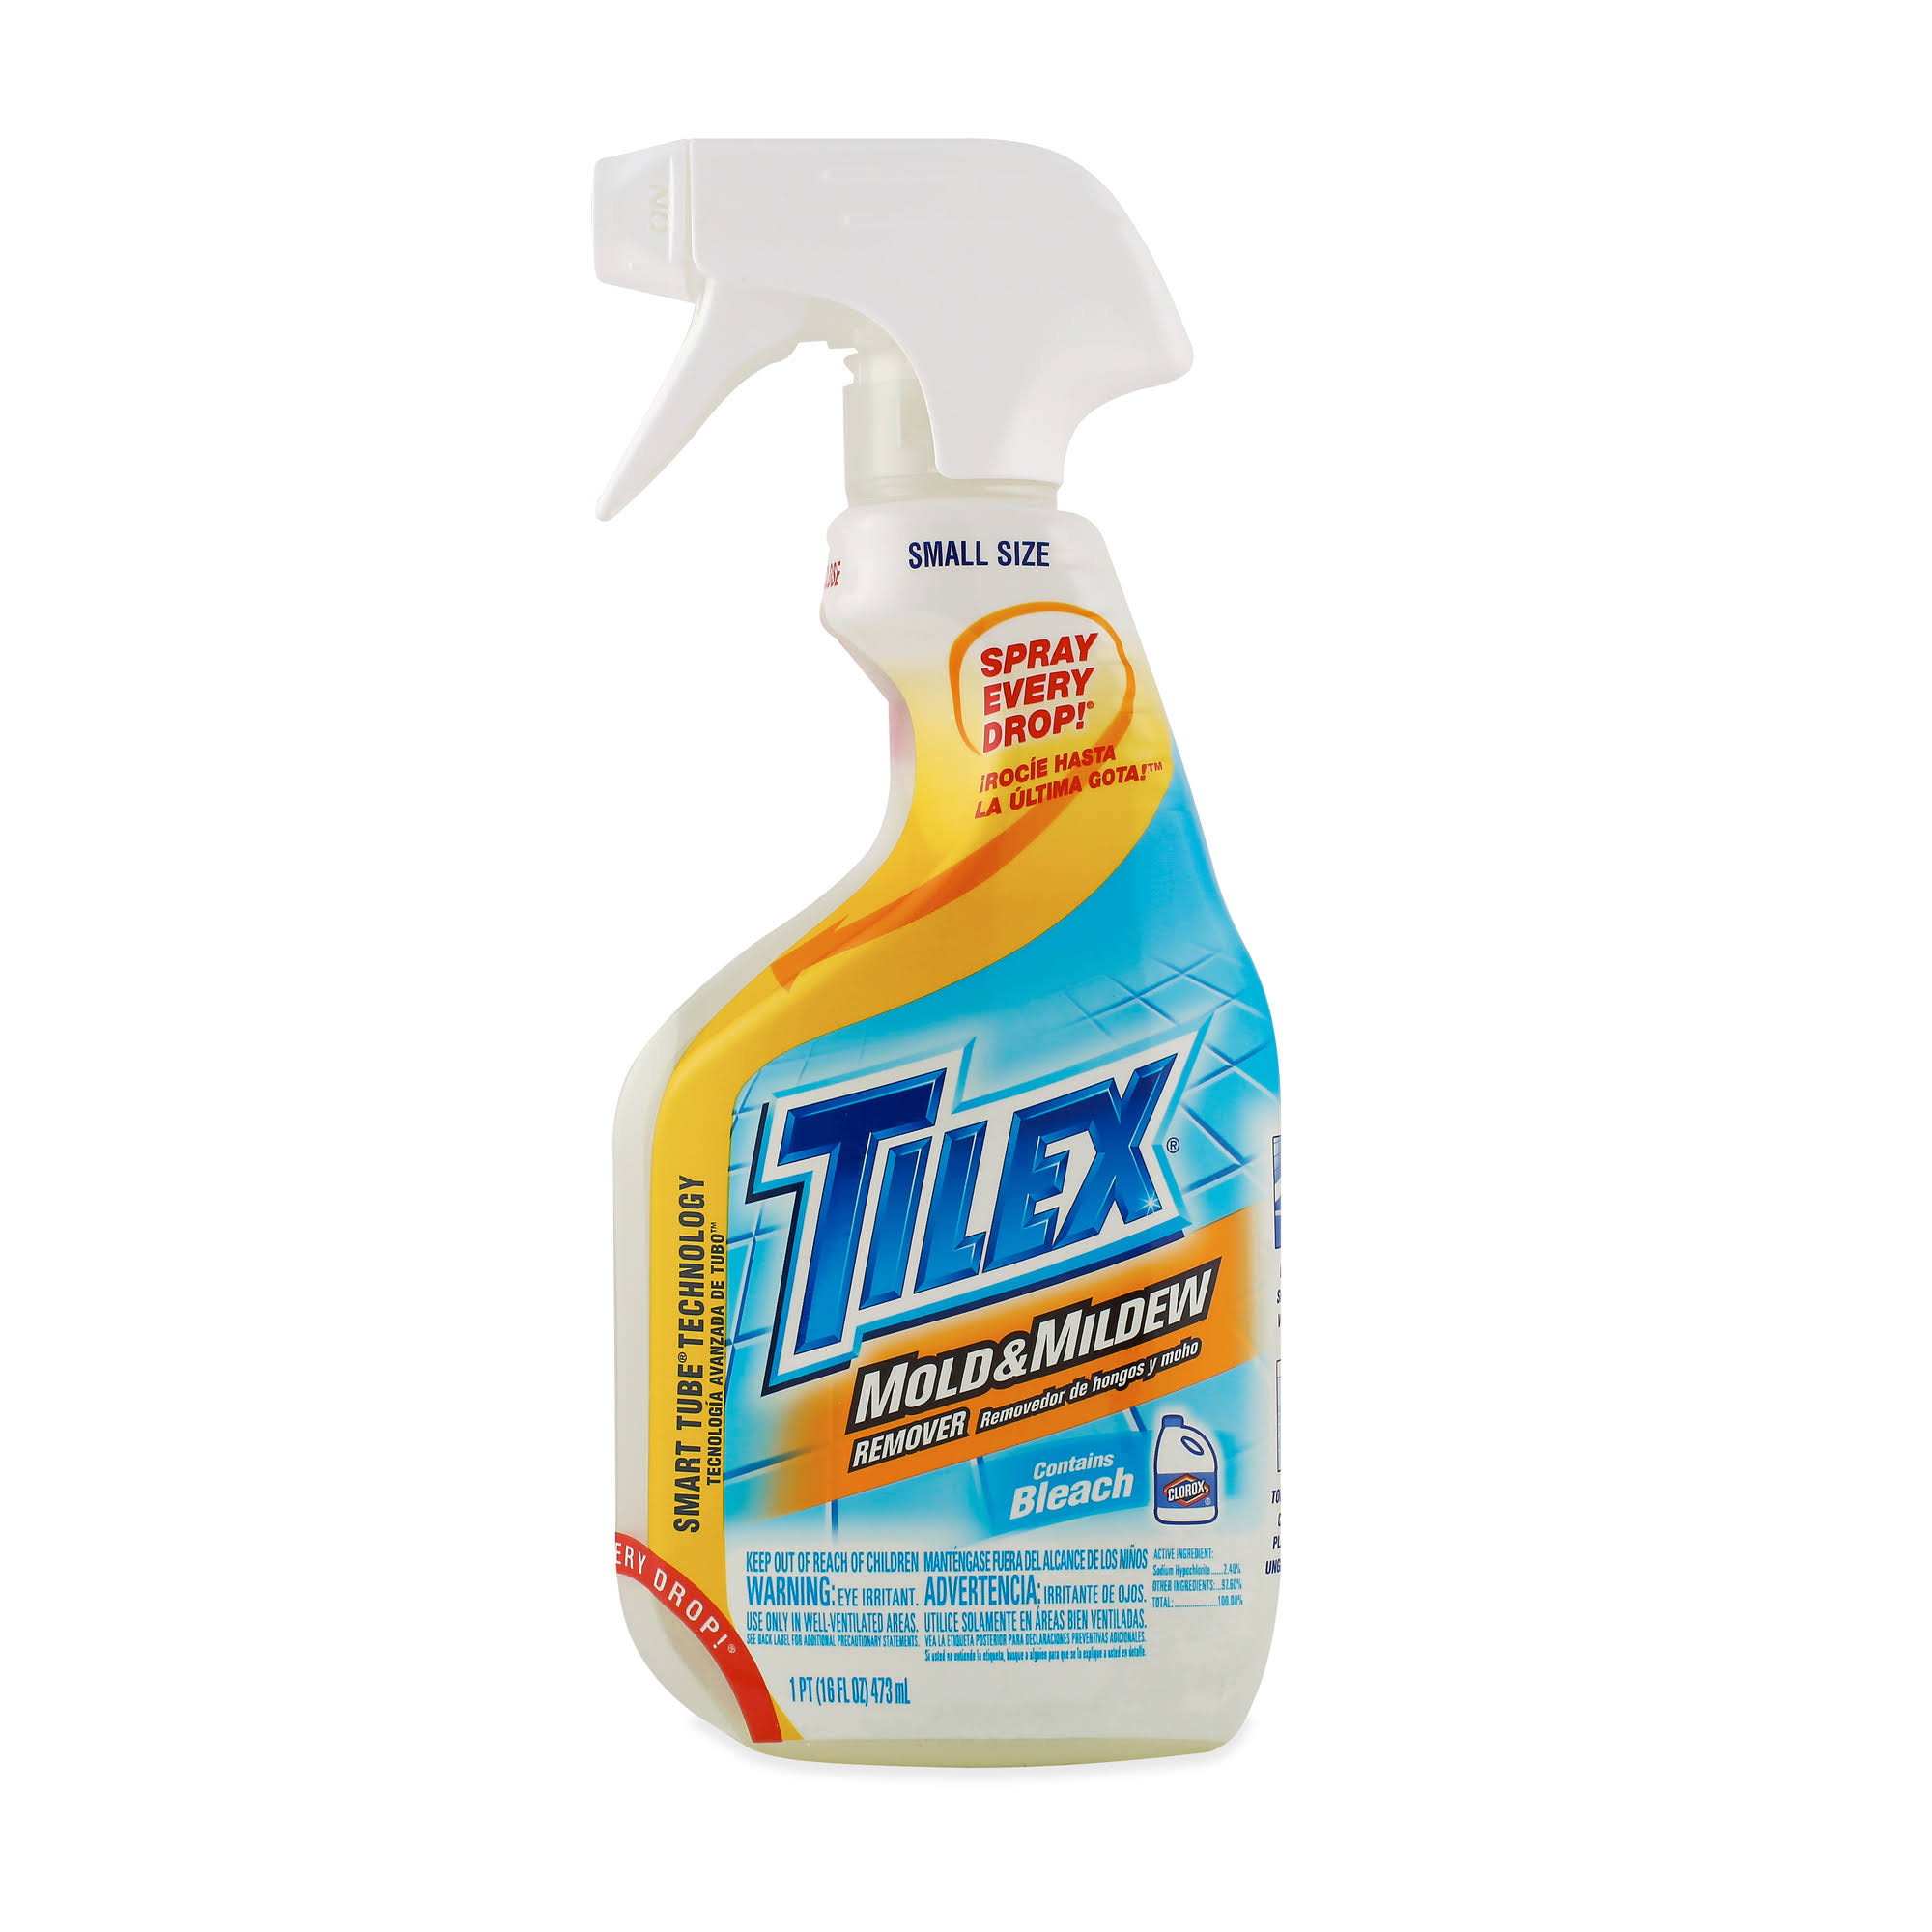 Tilex Mold and Mildew Remover Spray